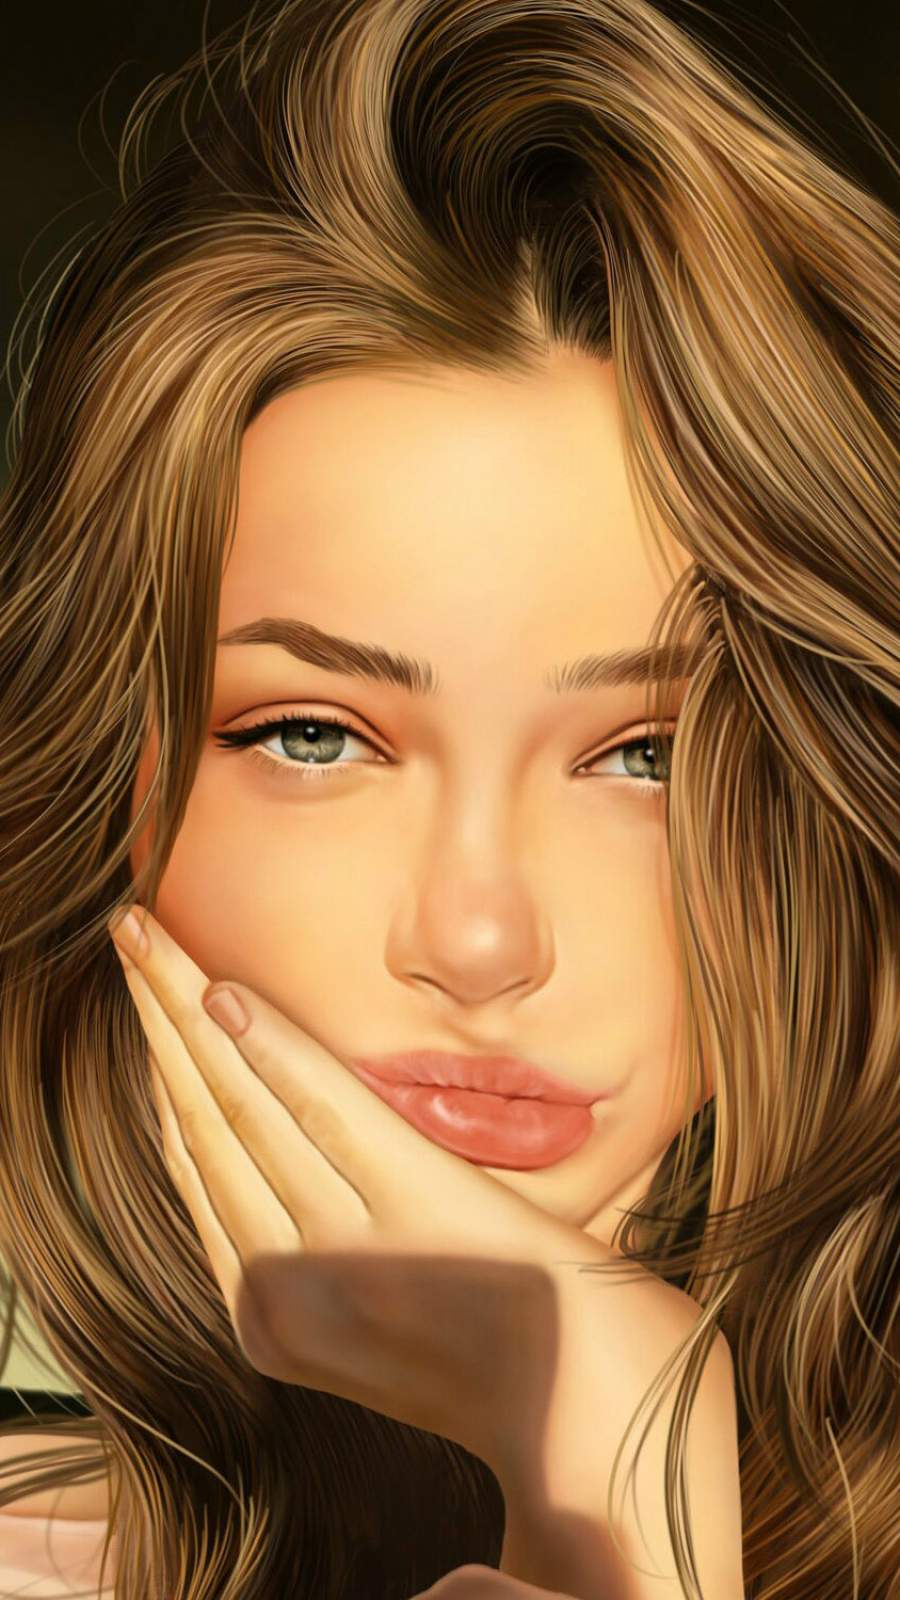 Beauty Girl iPhone Wallpaper